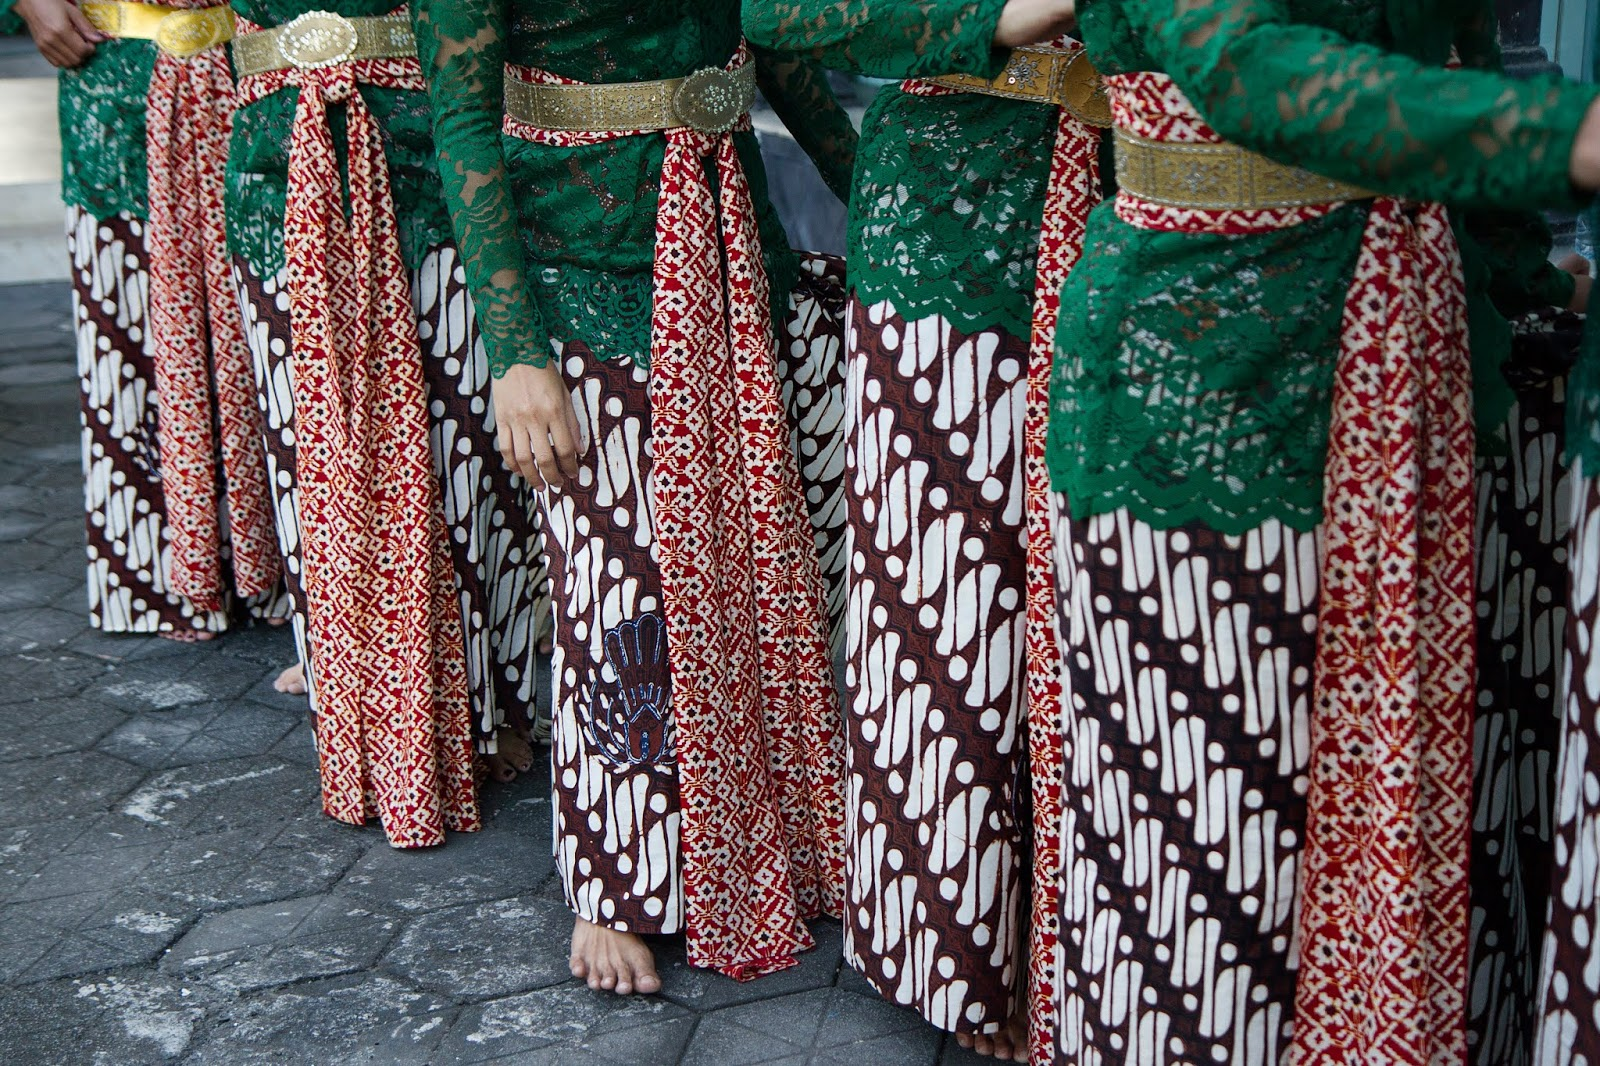 The Popular Batik Patterns in Indonesia